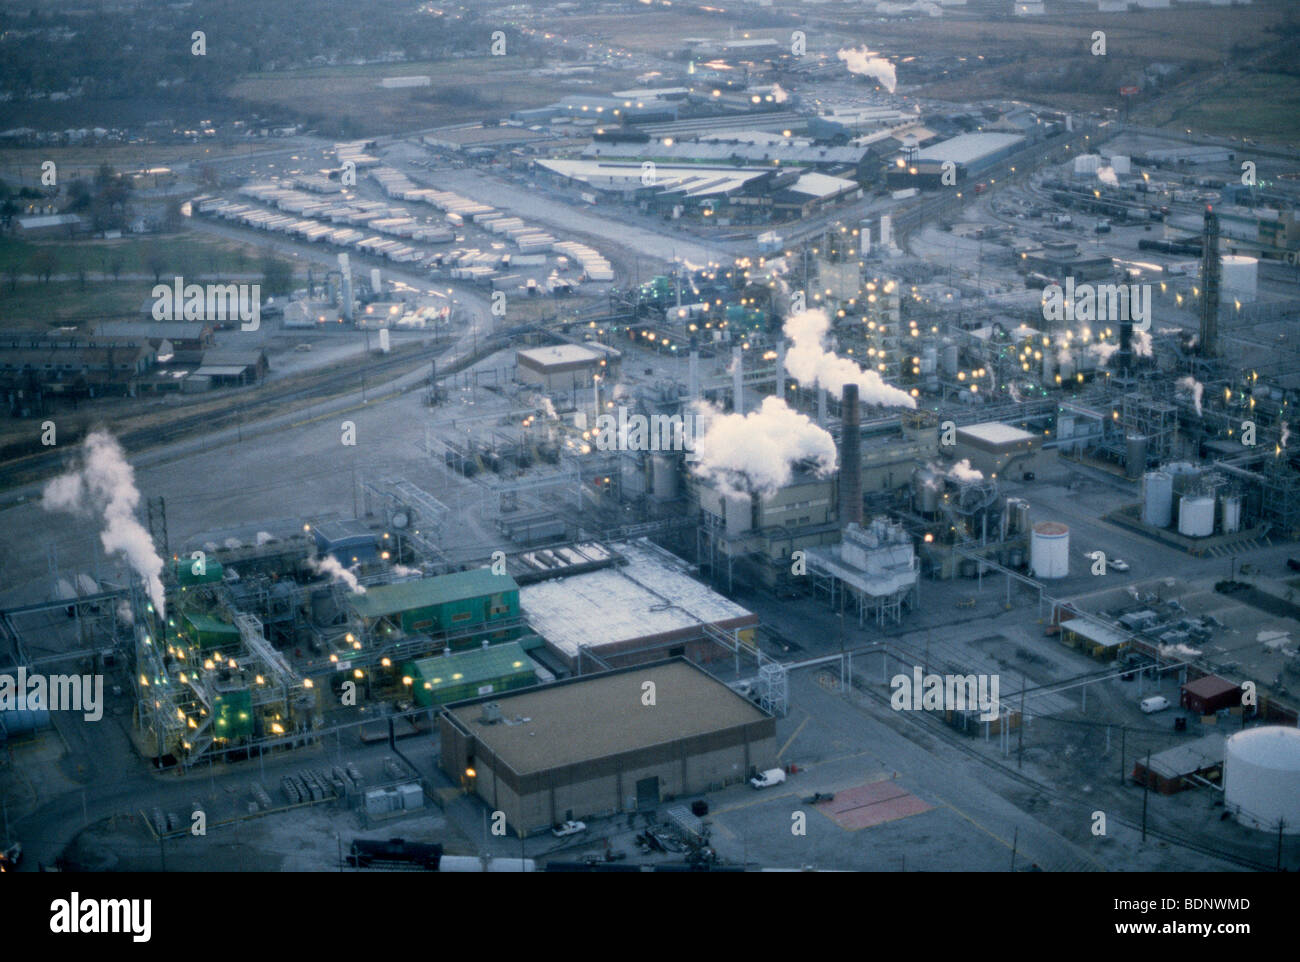 Power Plant, long beach, aearial view - Stock Image